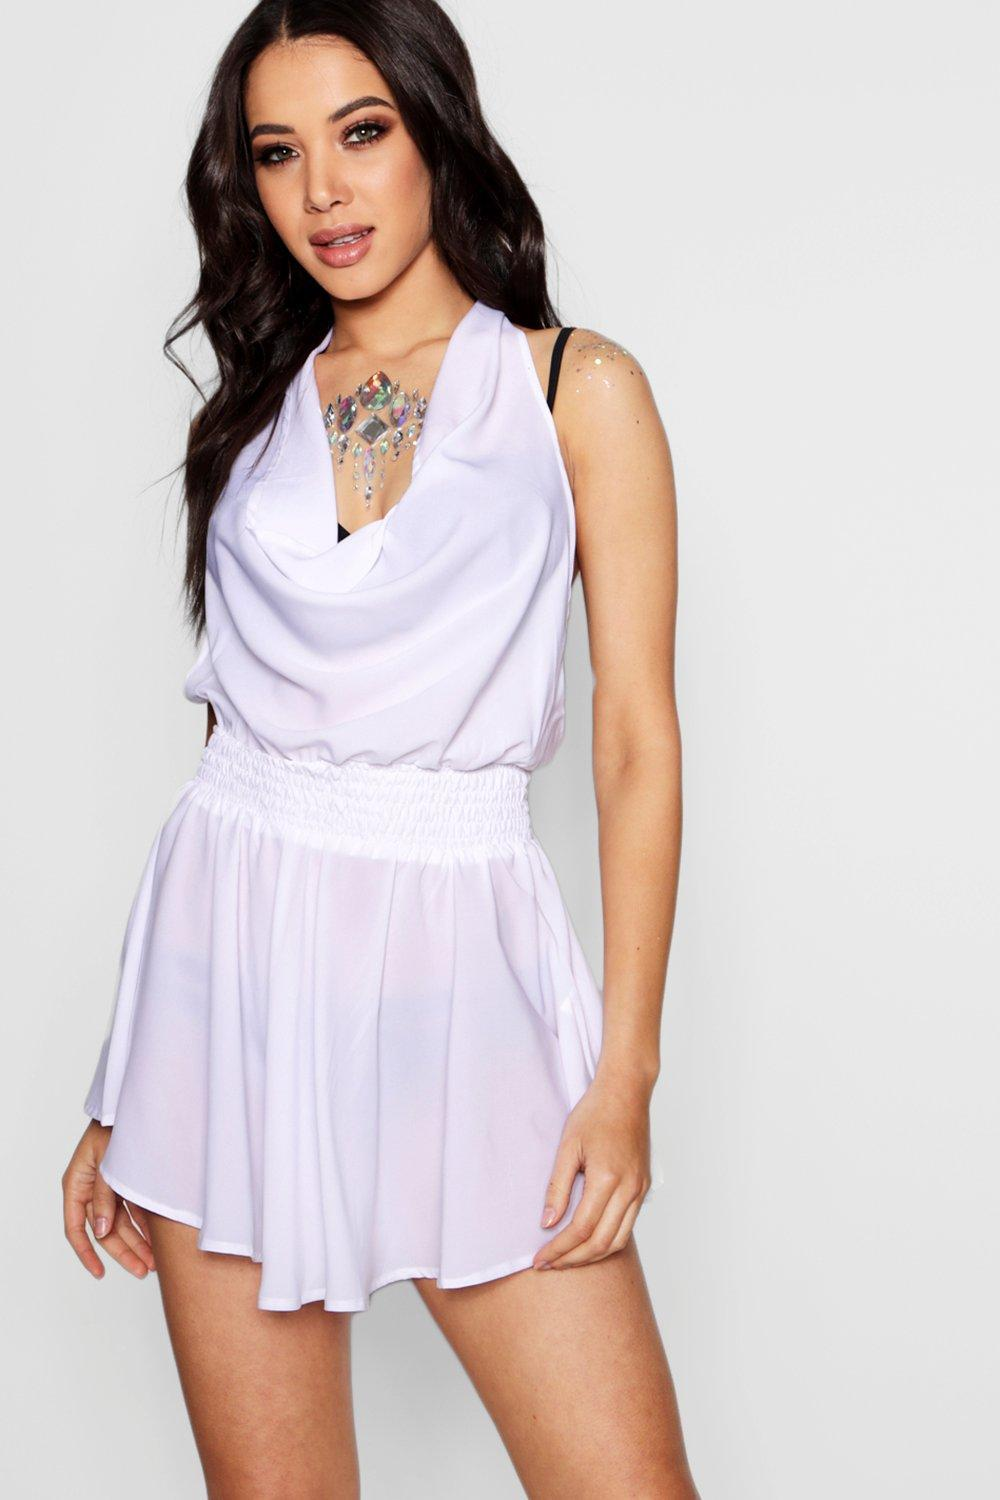 Boohoo Petite Ruched Waist Frill Halter Neck Beach Dress Wholesale Quality Great Deals Cheap Price HoLiW6